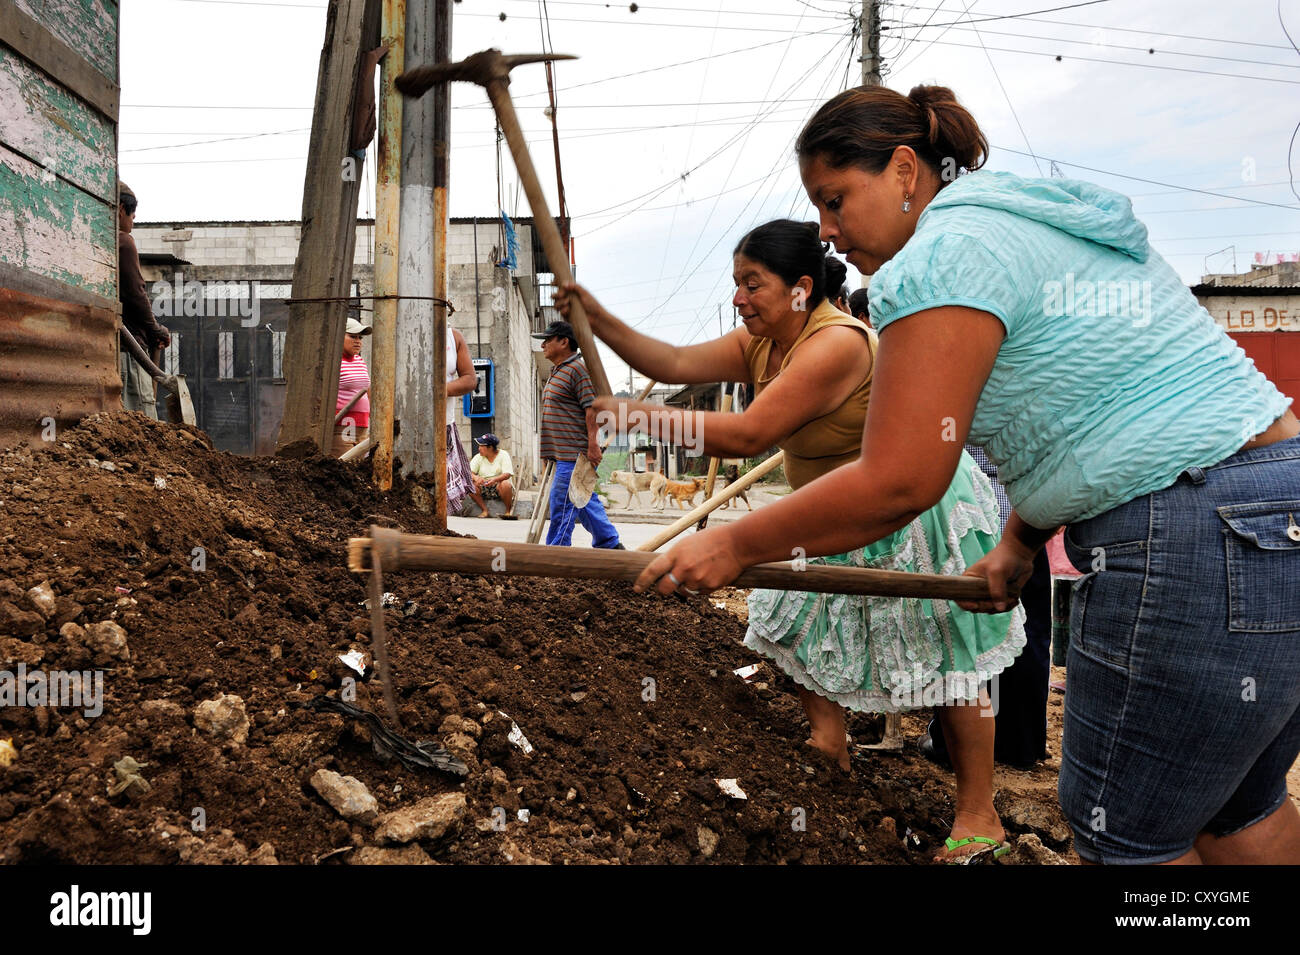 Women working together to improve the sewer system of their neighborhood, Lomas de Santa Faz slum, Guatemala City, - Stock Image